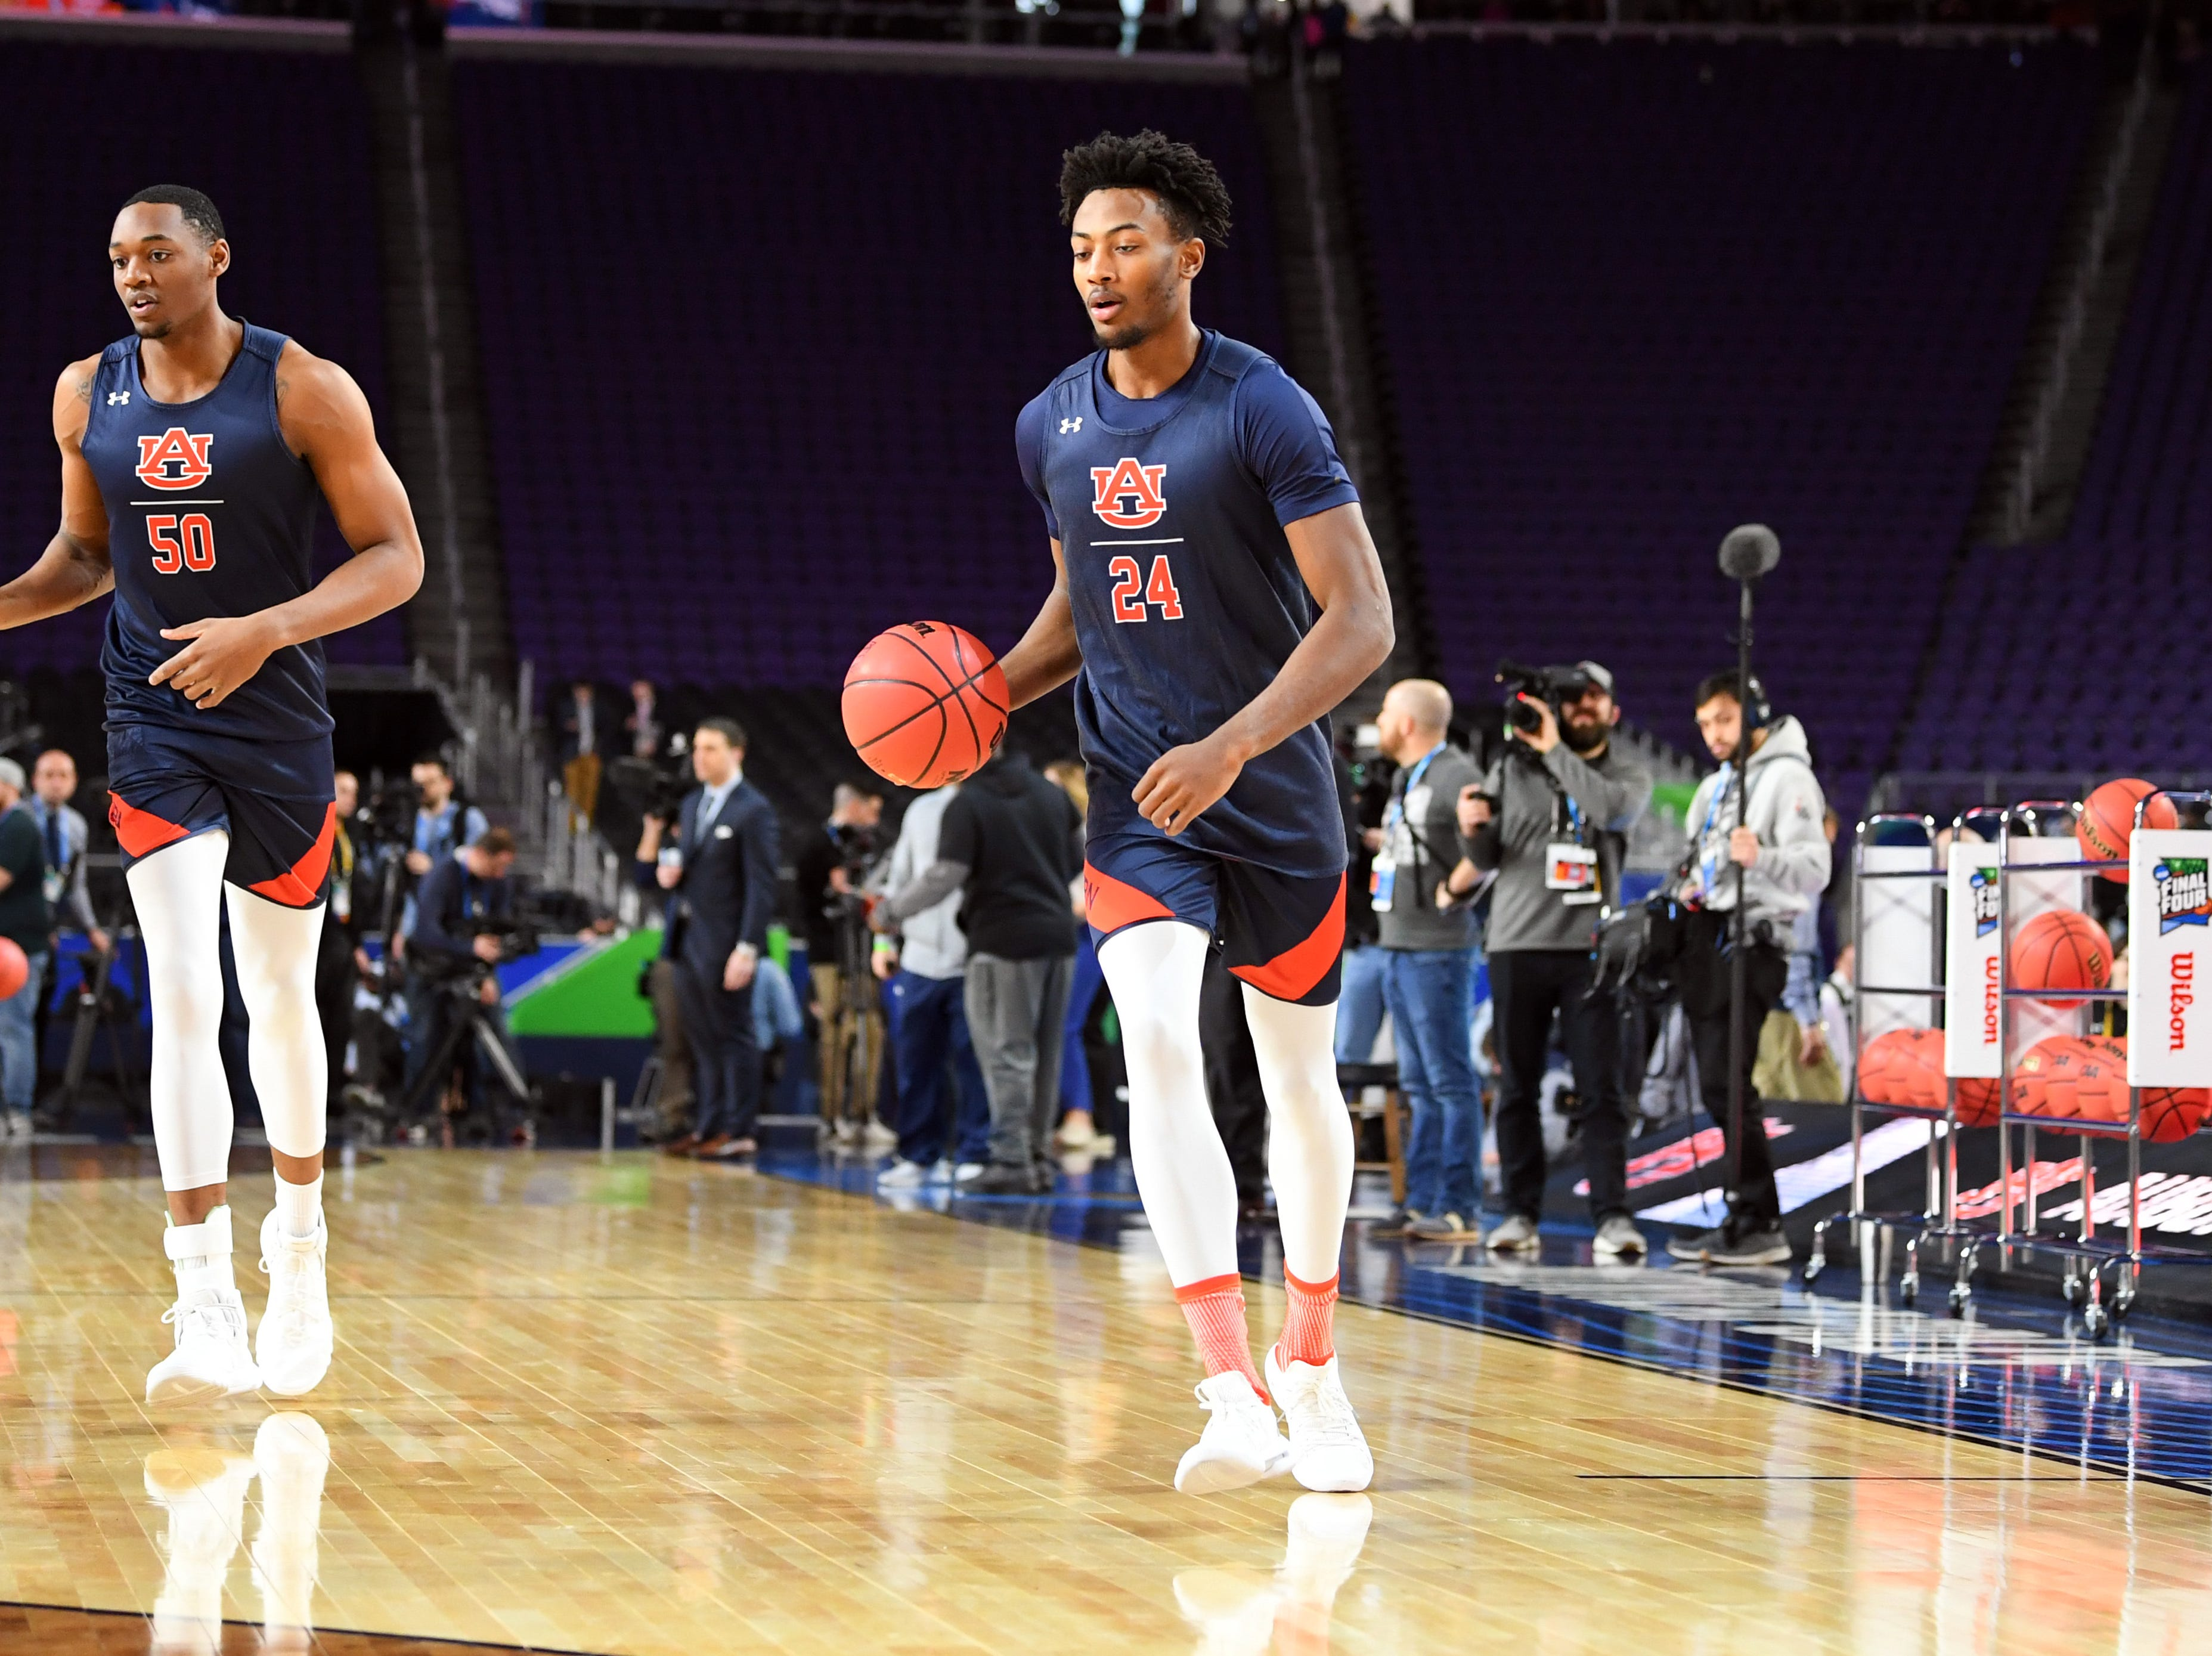 Apr 5, 2019; Minneapolis, MN, USA; Auburn Tigers center Austin Wiley (50) and Anfernee McLemore (24)during practice for the 2019 men's Final Four at US Bank Stadium. Mandatory Credit: Bob Donnan-USA TODAY Sports